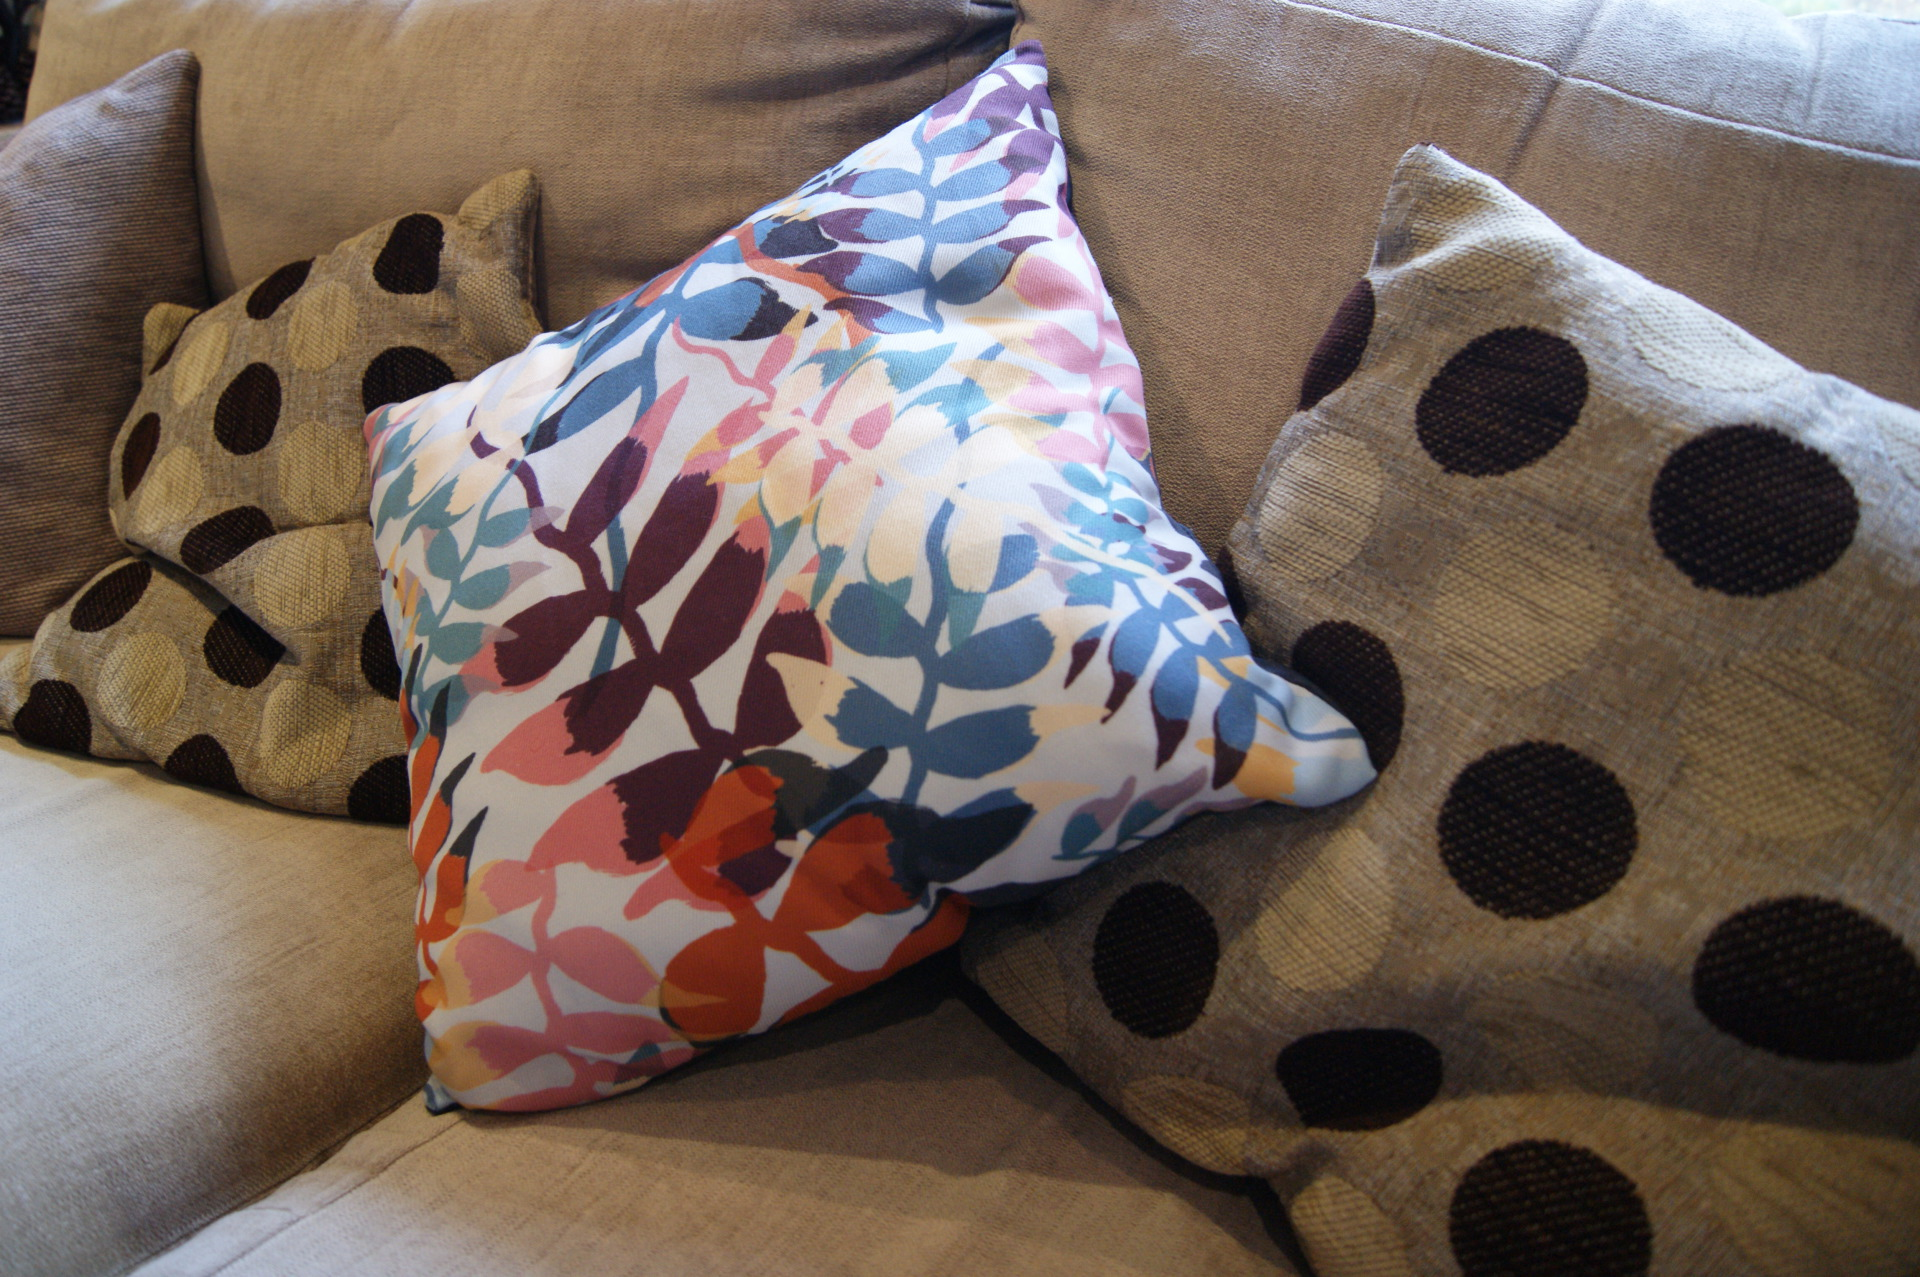 Chloe Rutherford - Floral Pod Cushion